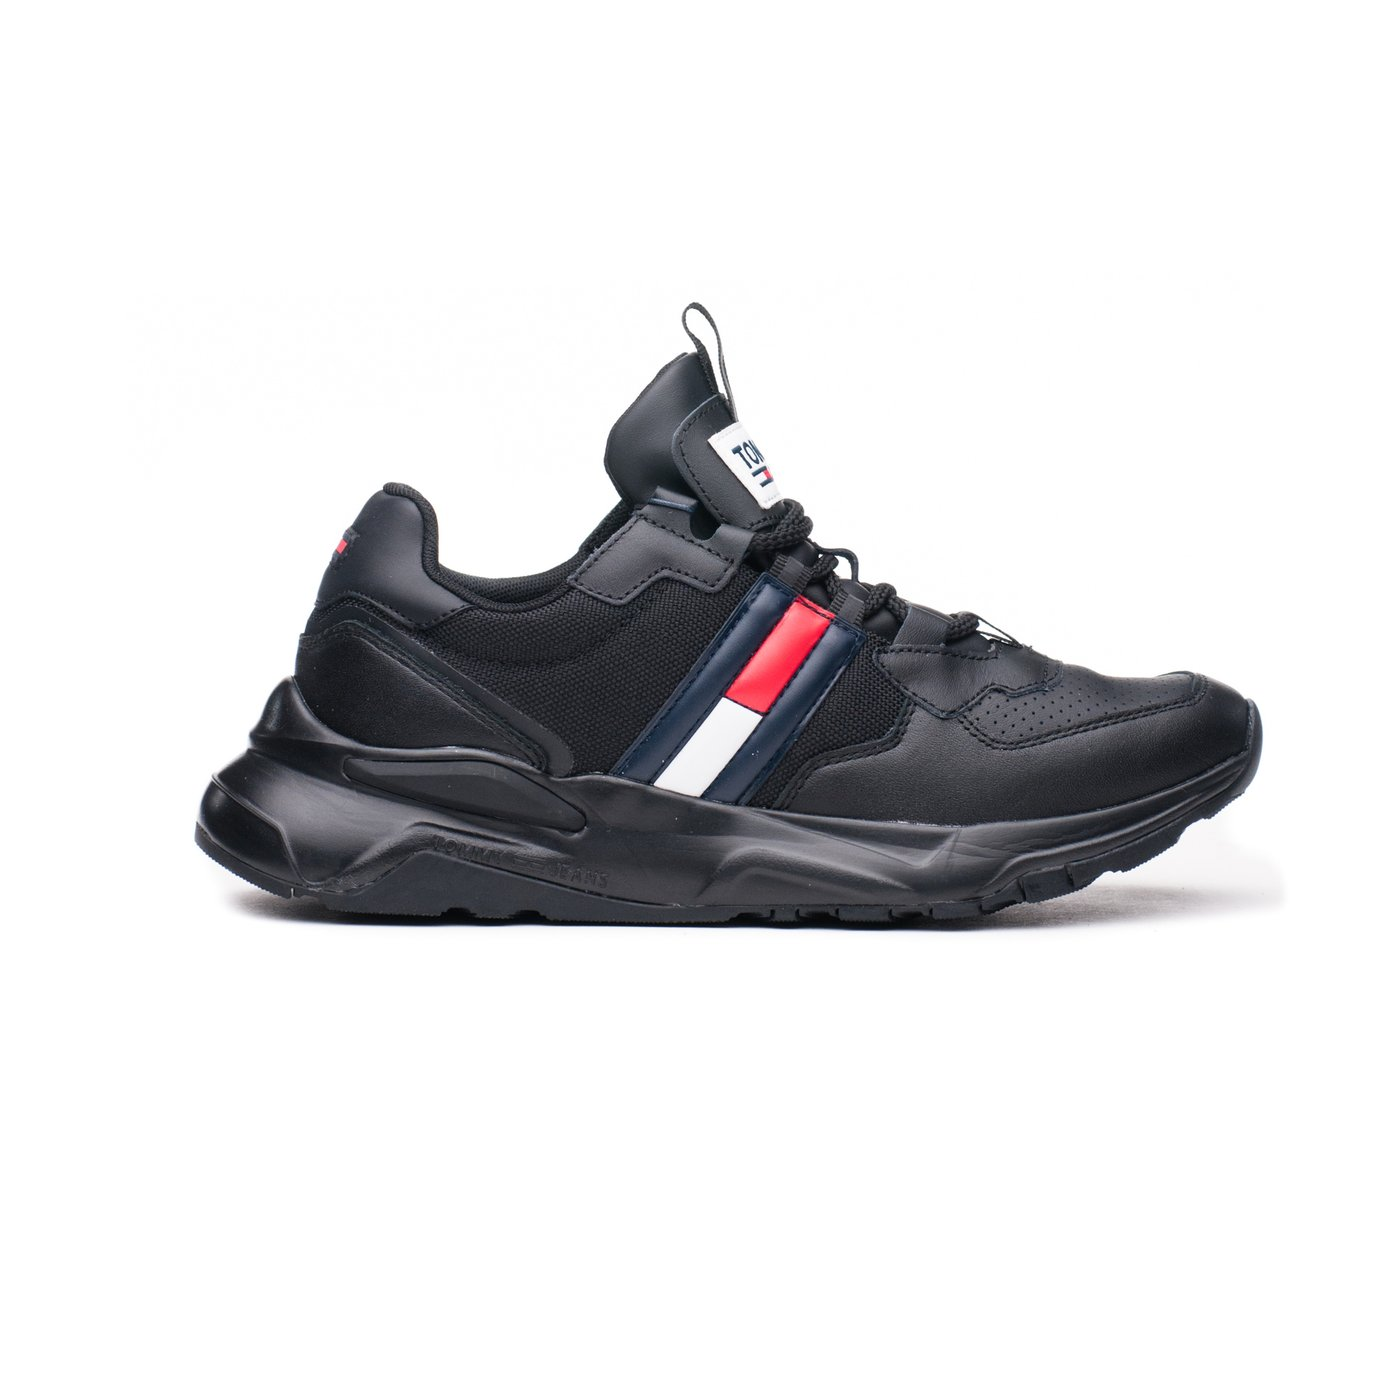 Кросівки чоловічі Tommy Hilfiger CHUNKY TECH RUNNER